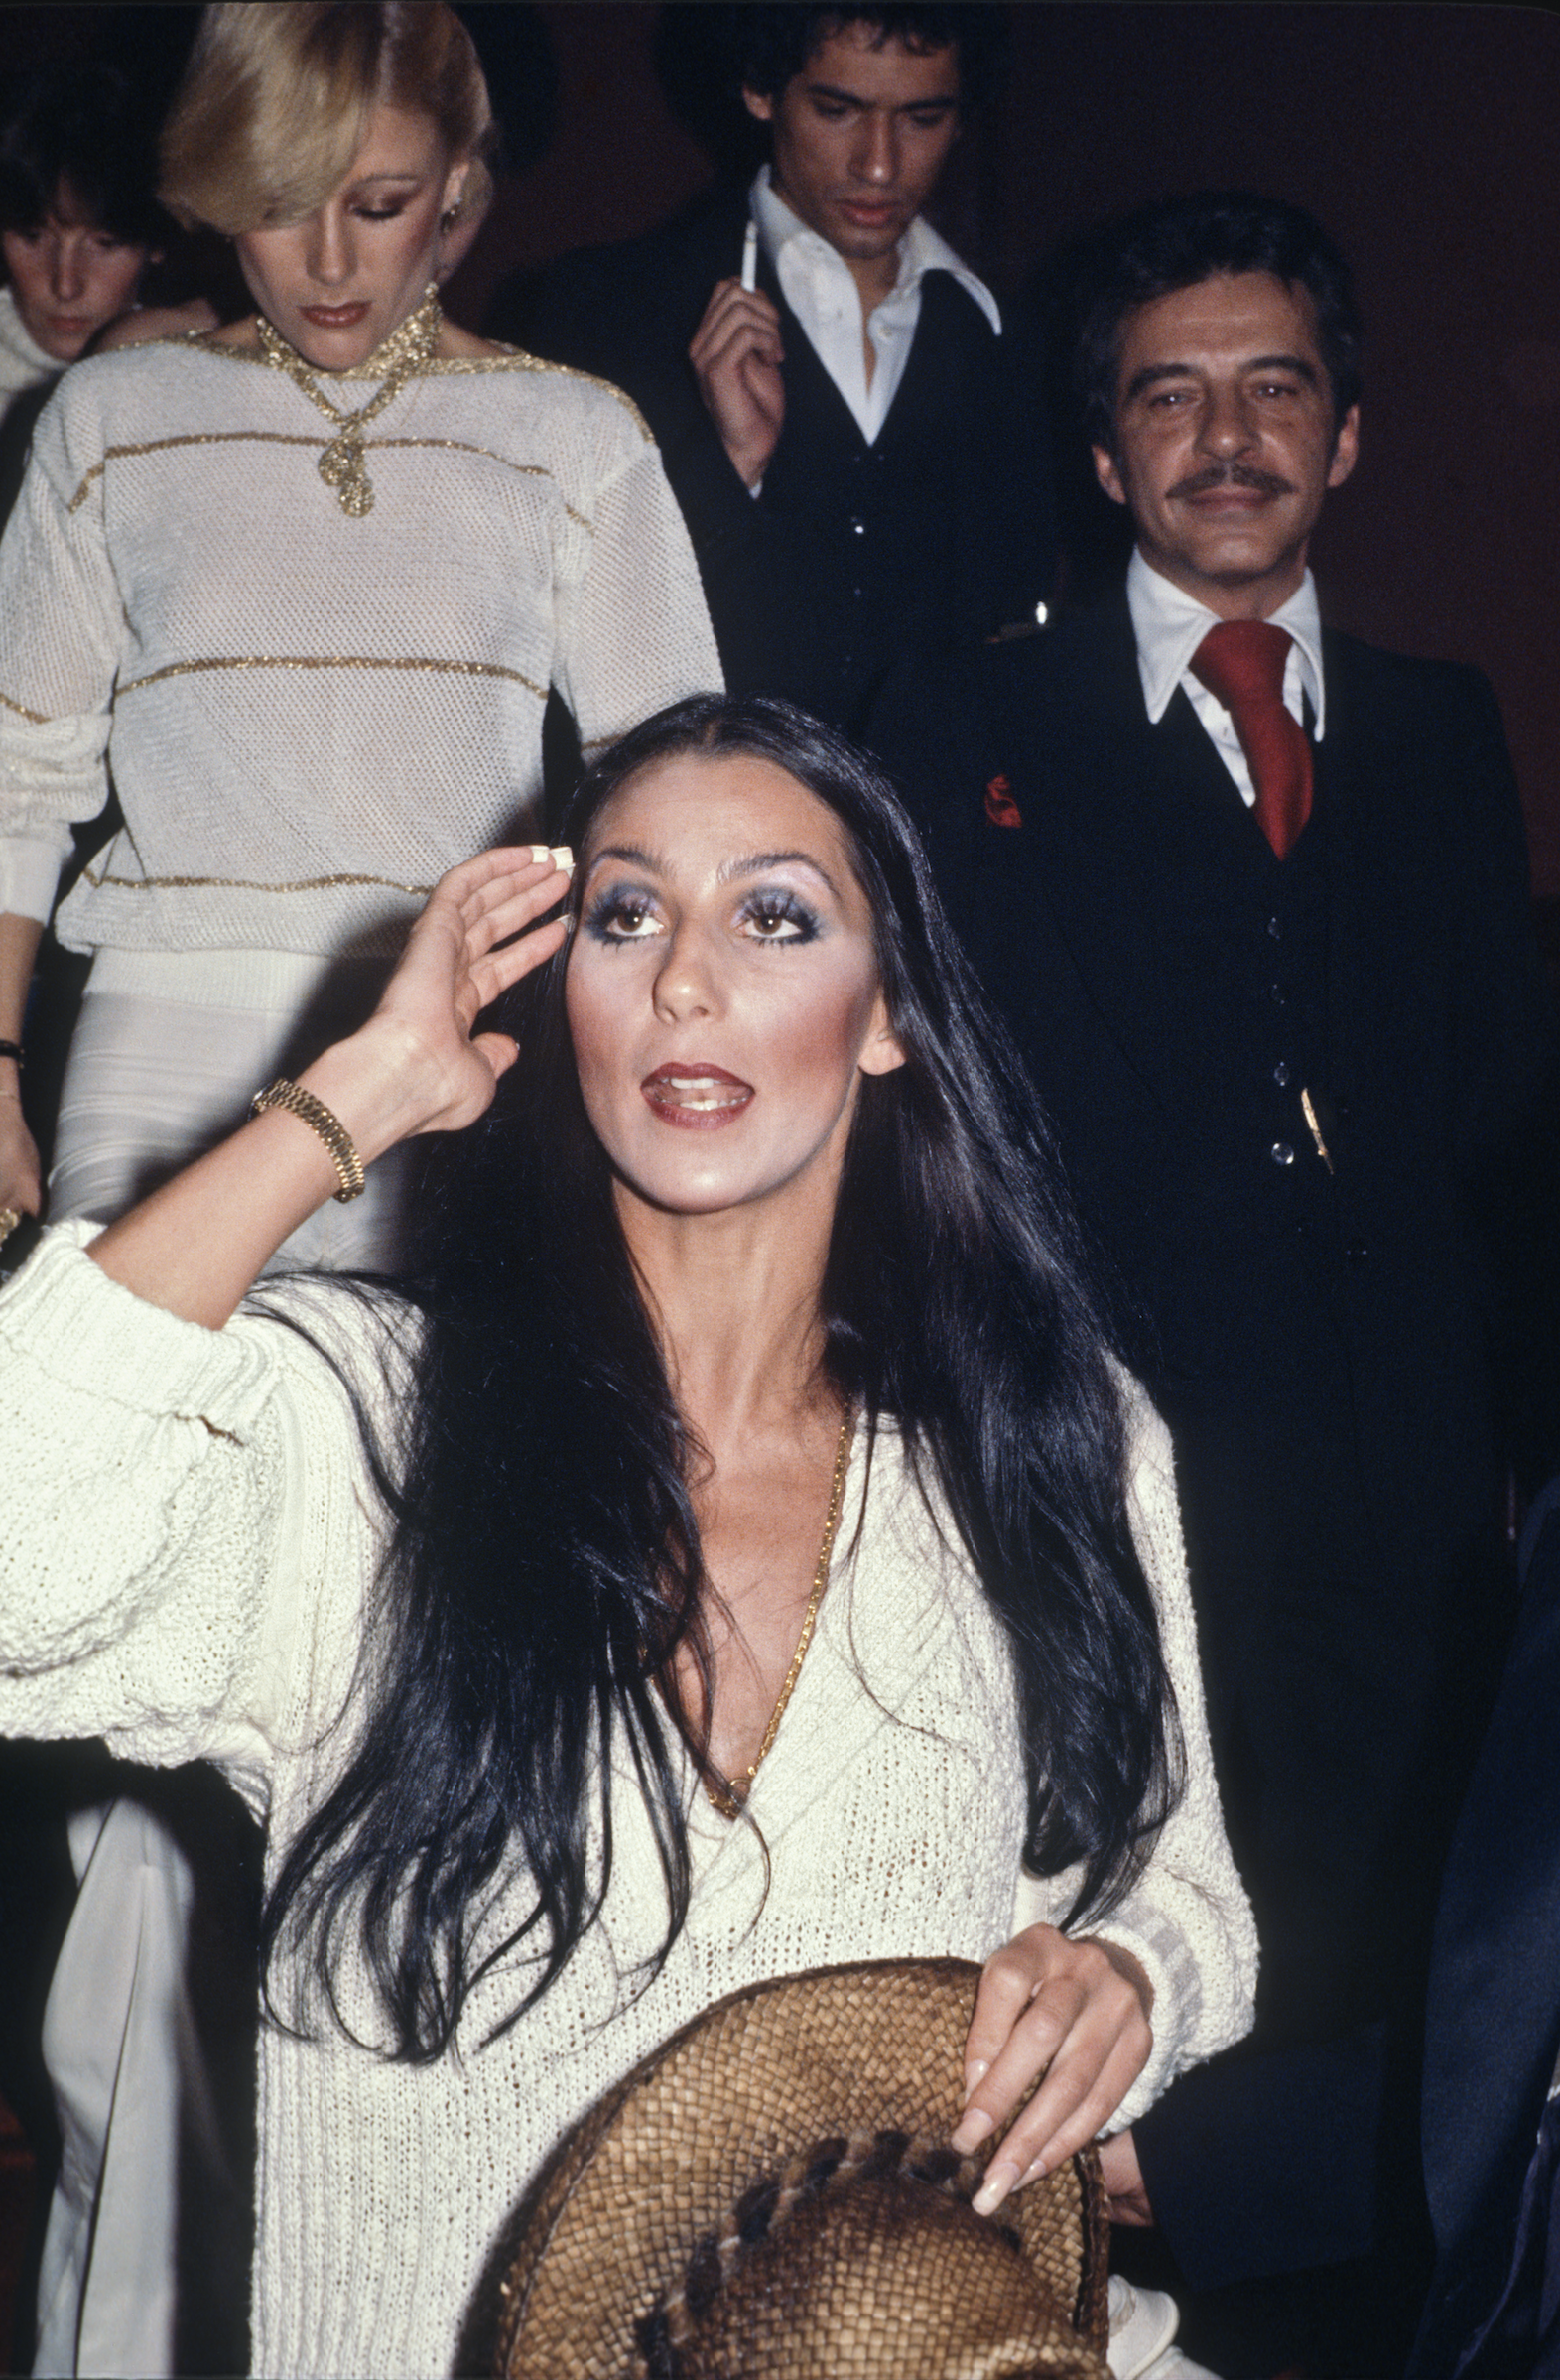 Cher on the stairs by Allan Tannebaum